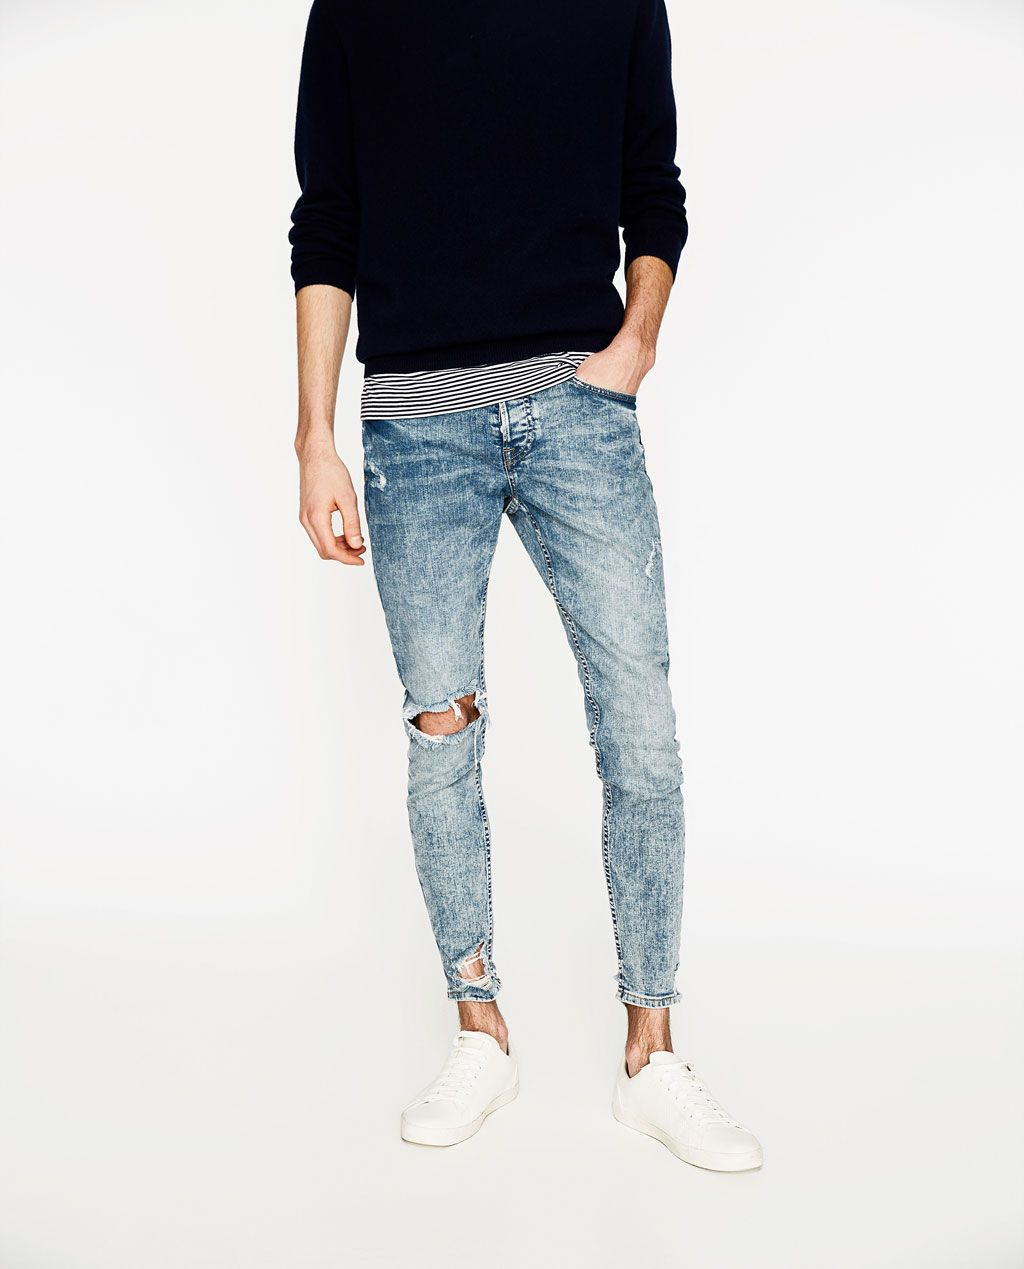 09413c5e54d RAW EDGE SKINNY JEANS - Available in more colours | men's style ...